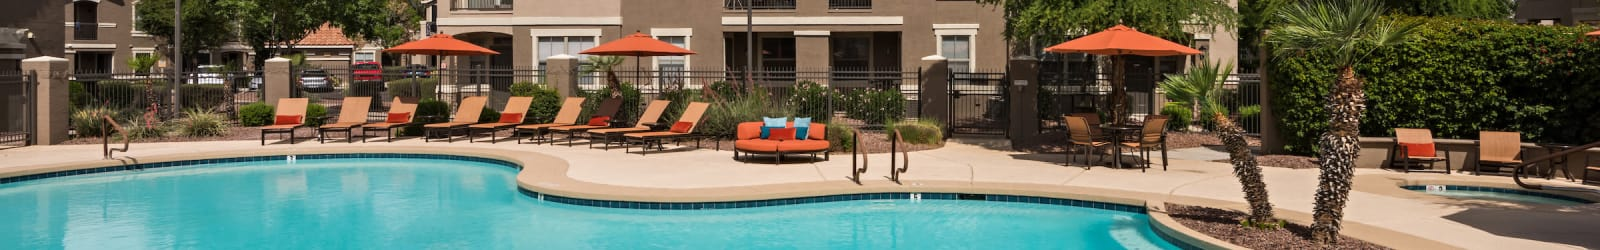 Pet friendly at Villas on Hampton Avenue in Mesa, Arizona